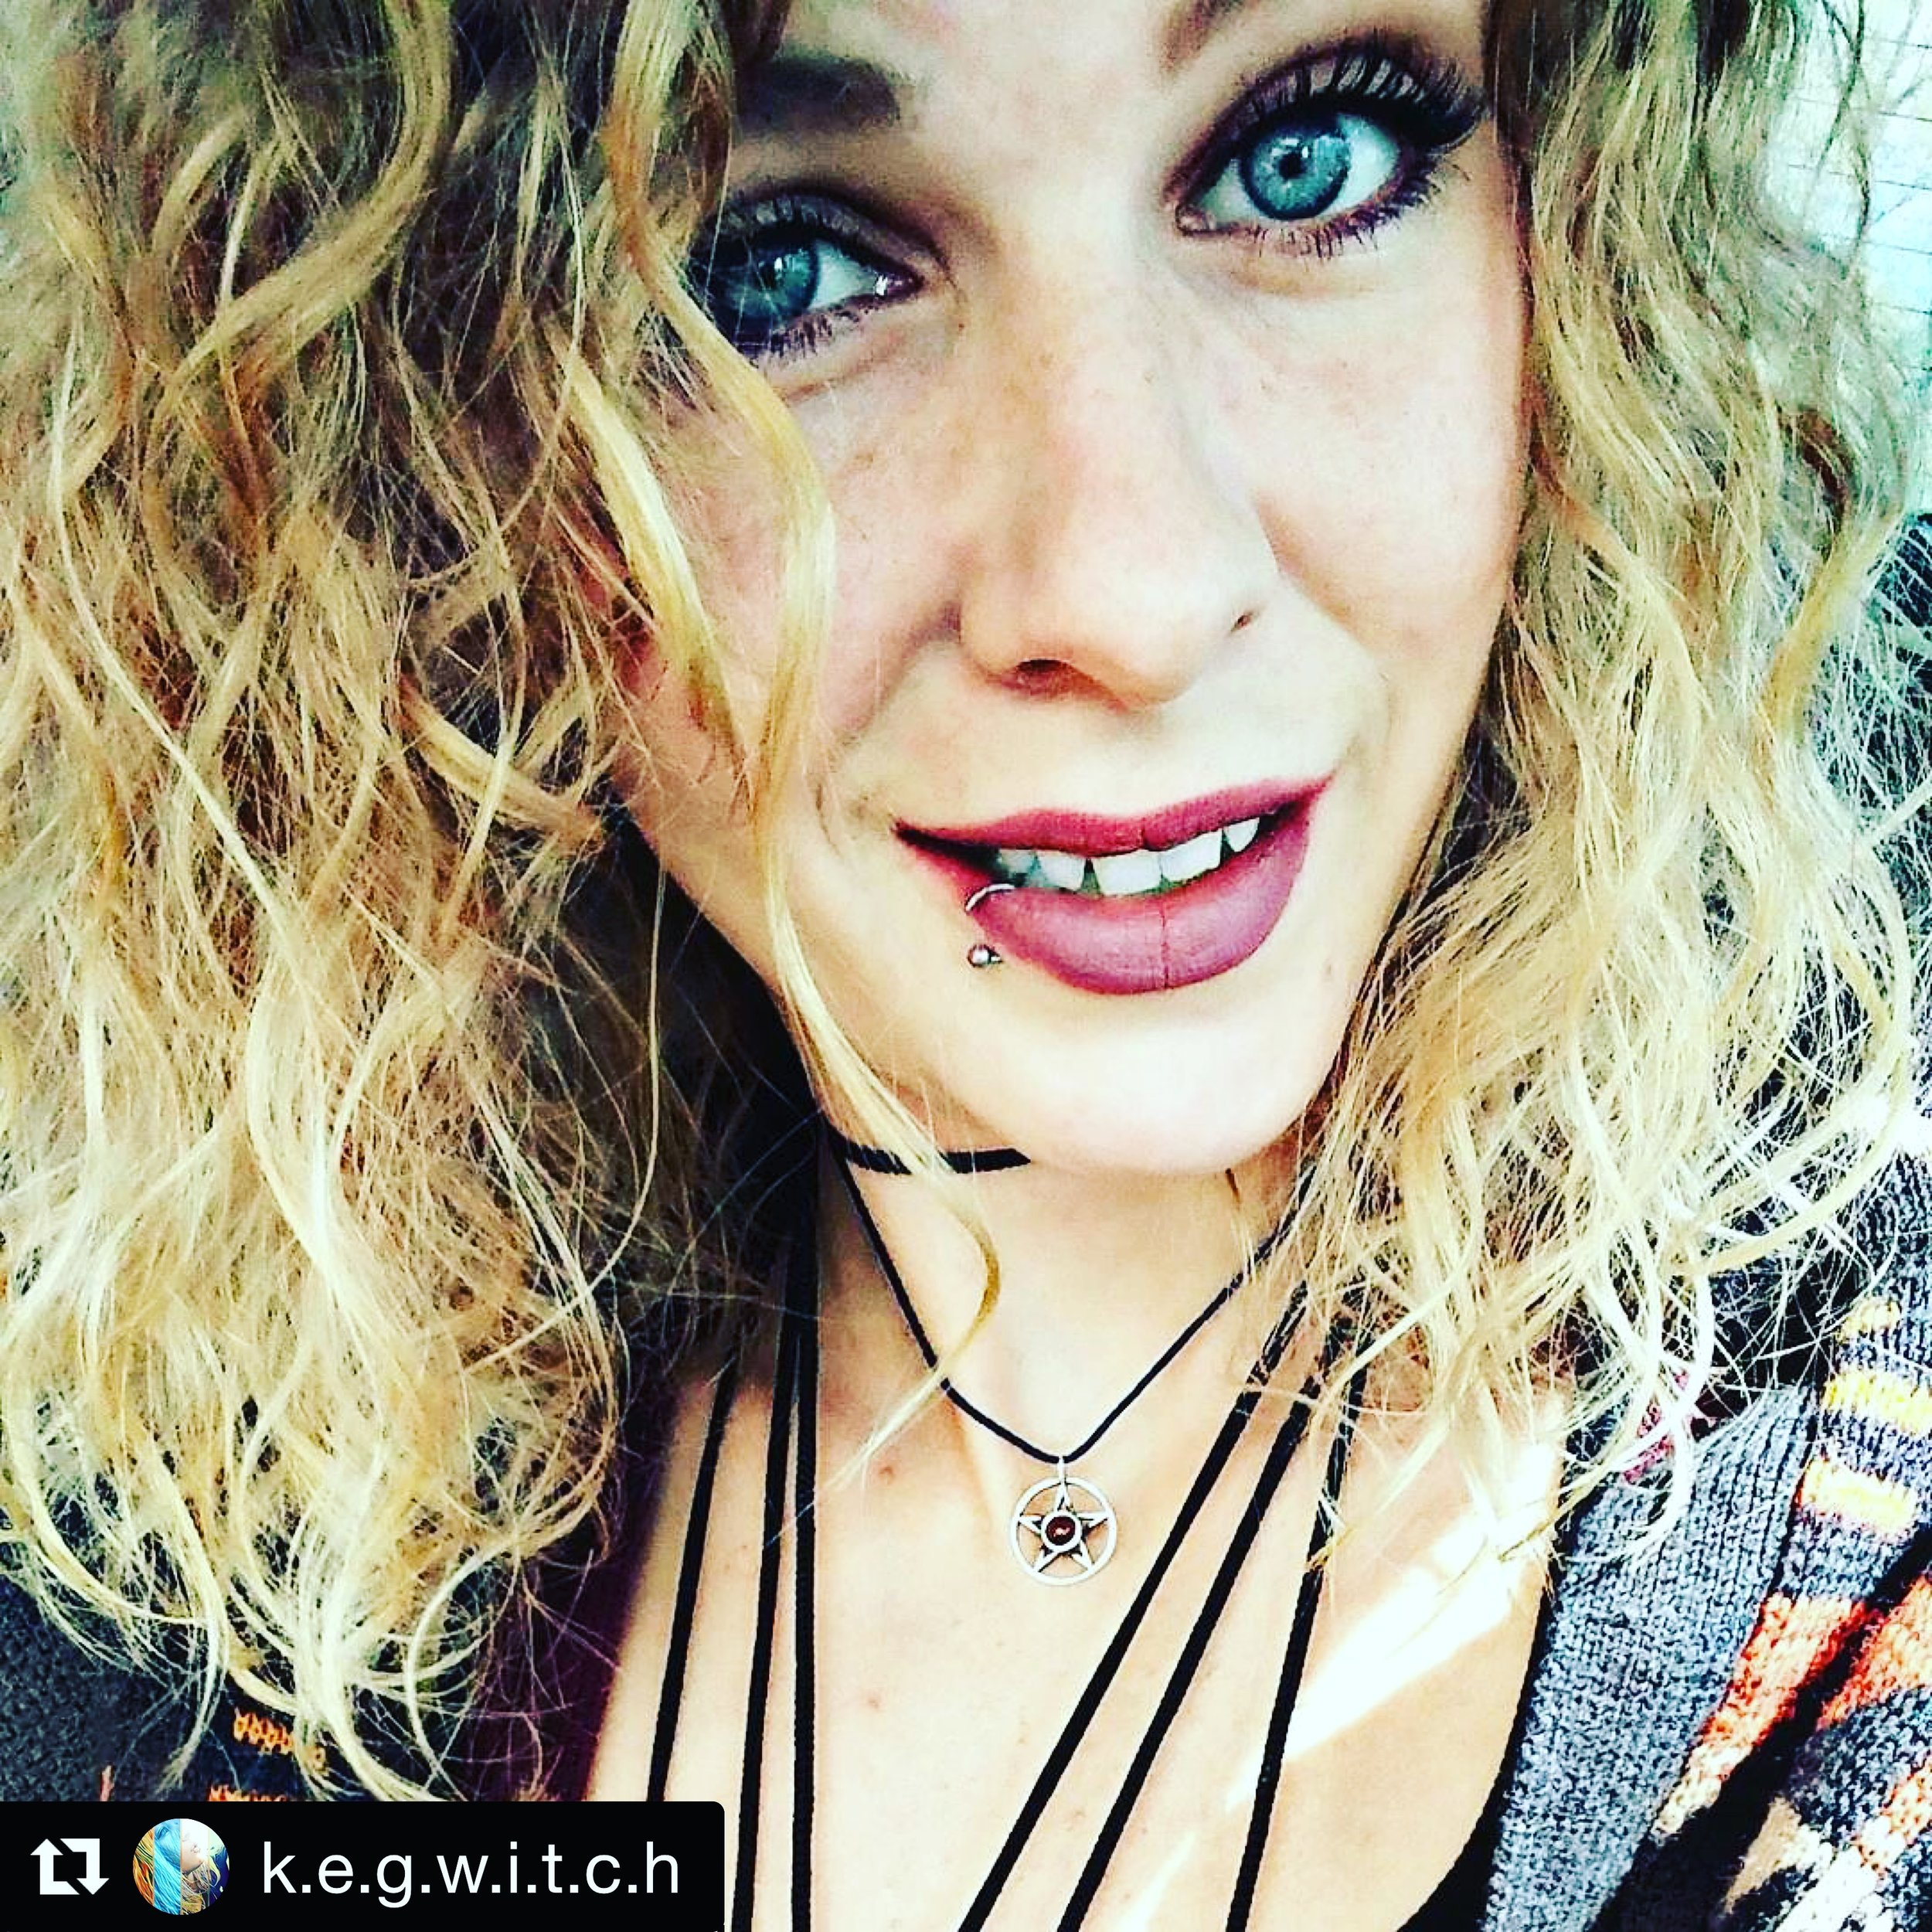 @k.e.g.w.i.t.c.h - Look at @k.e.g.w.i.t.c.h rocking those curls and freckles and eyes! Loved seeing her witchy results <3